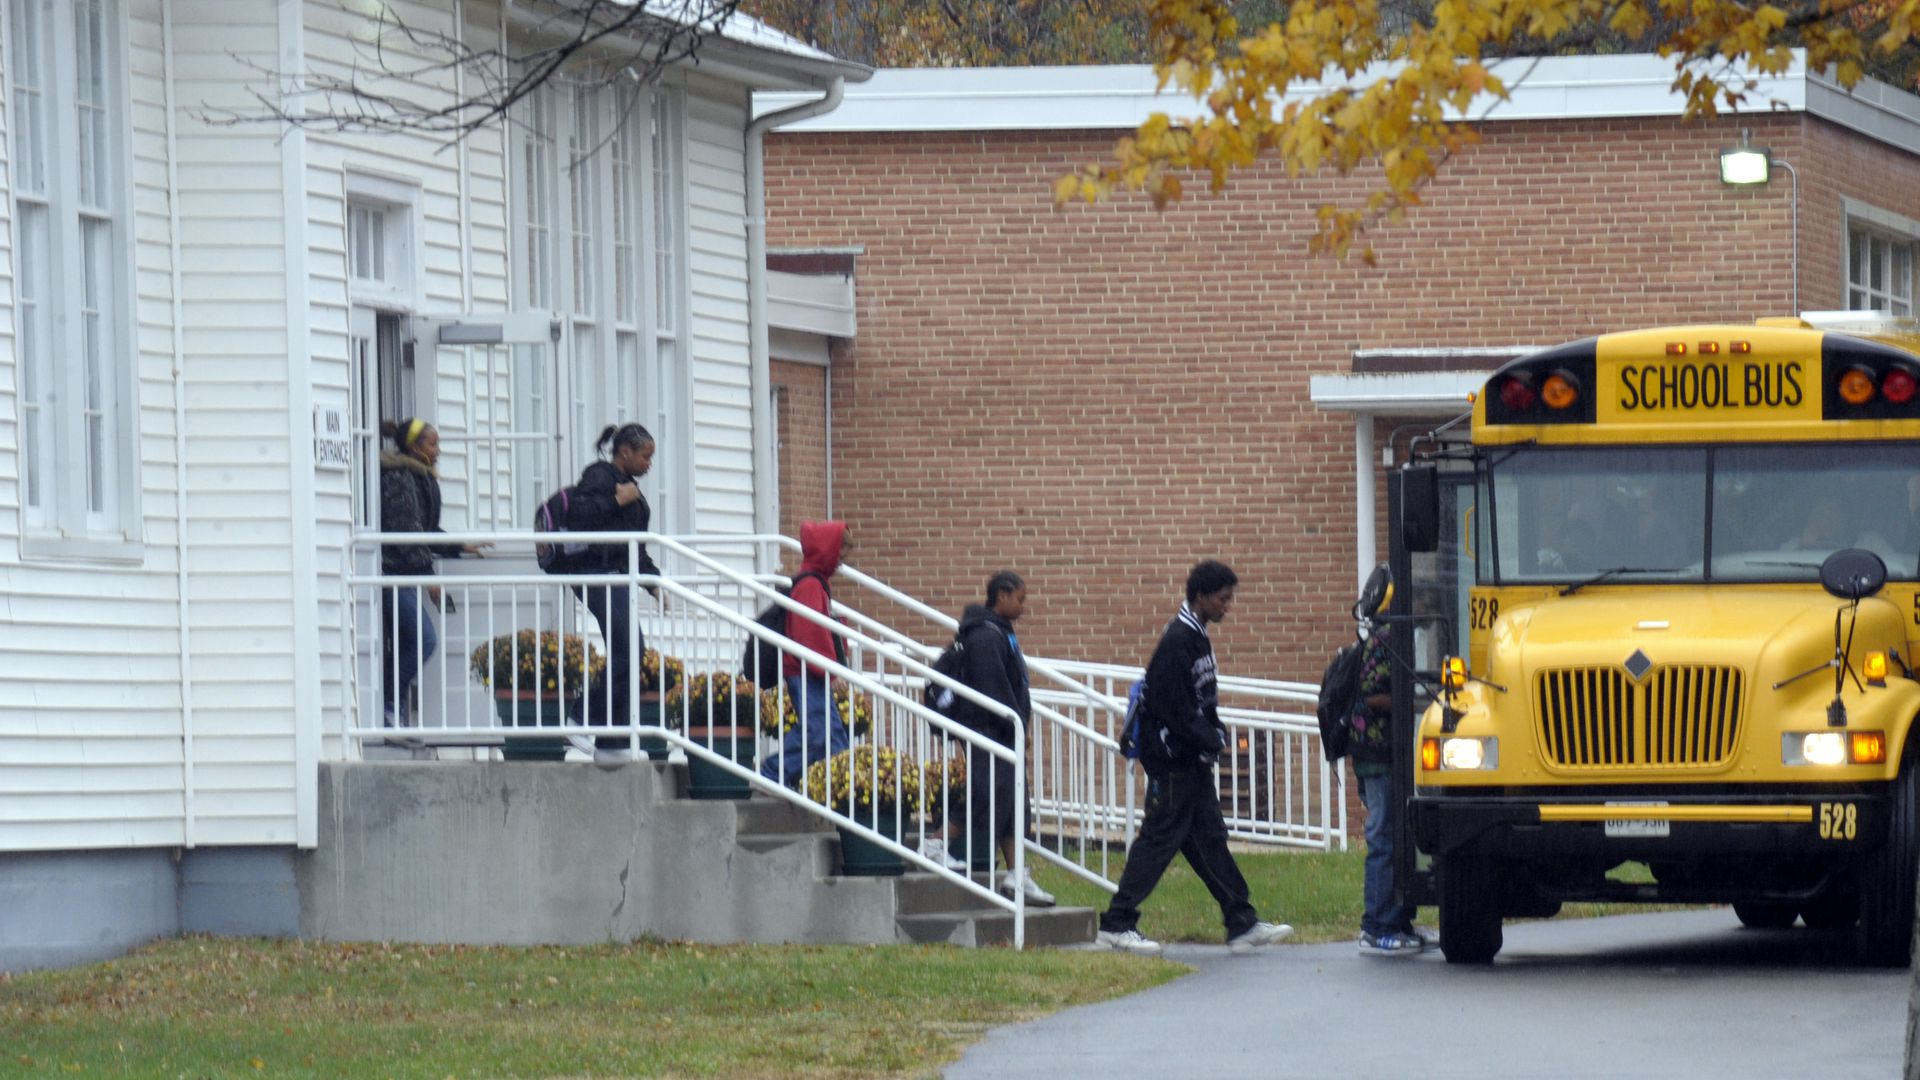 Kids board a yellow school bus